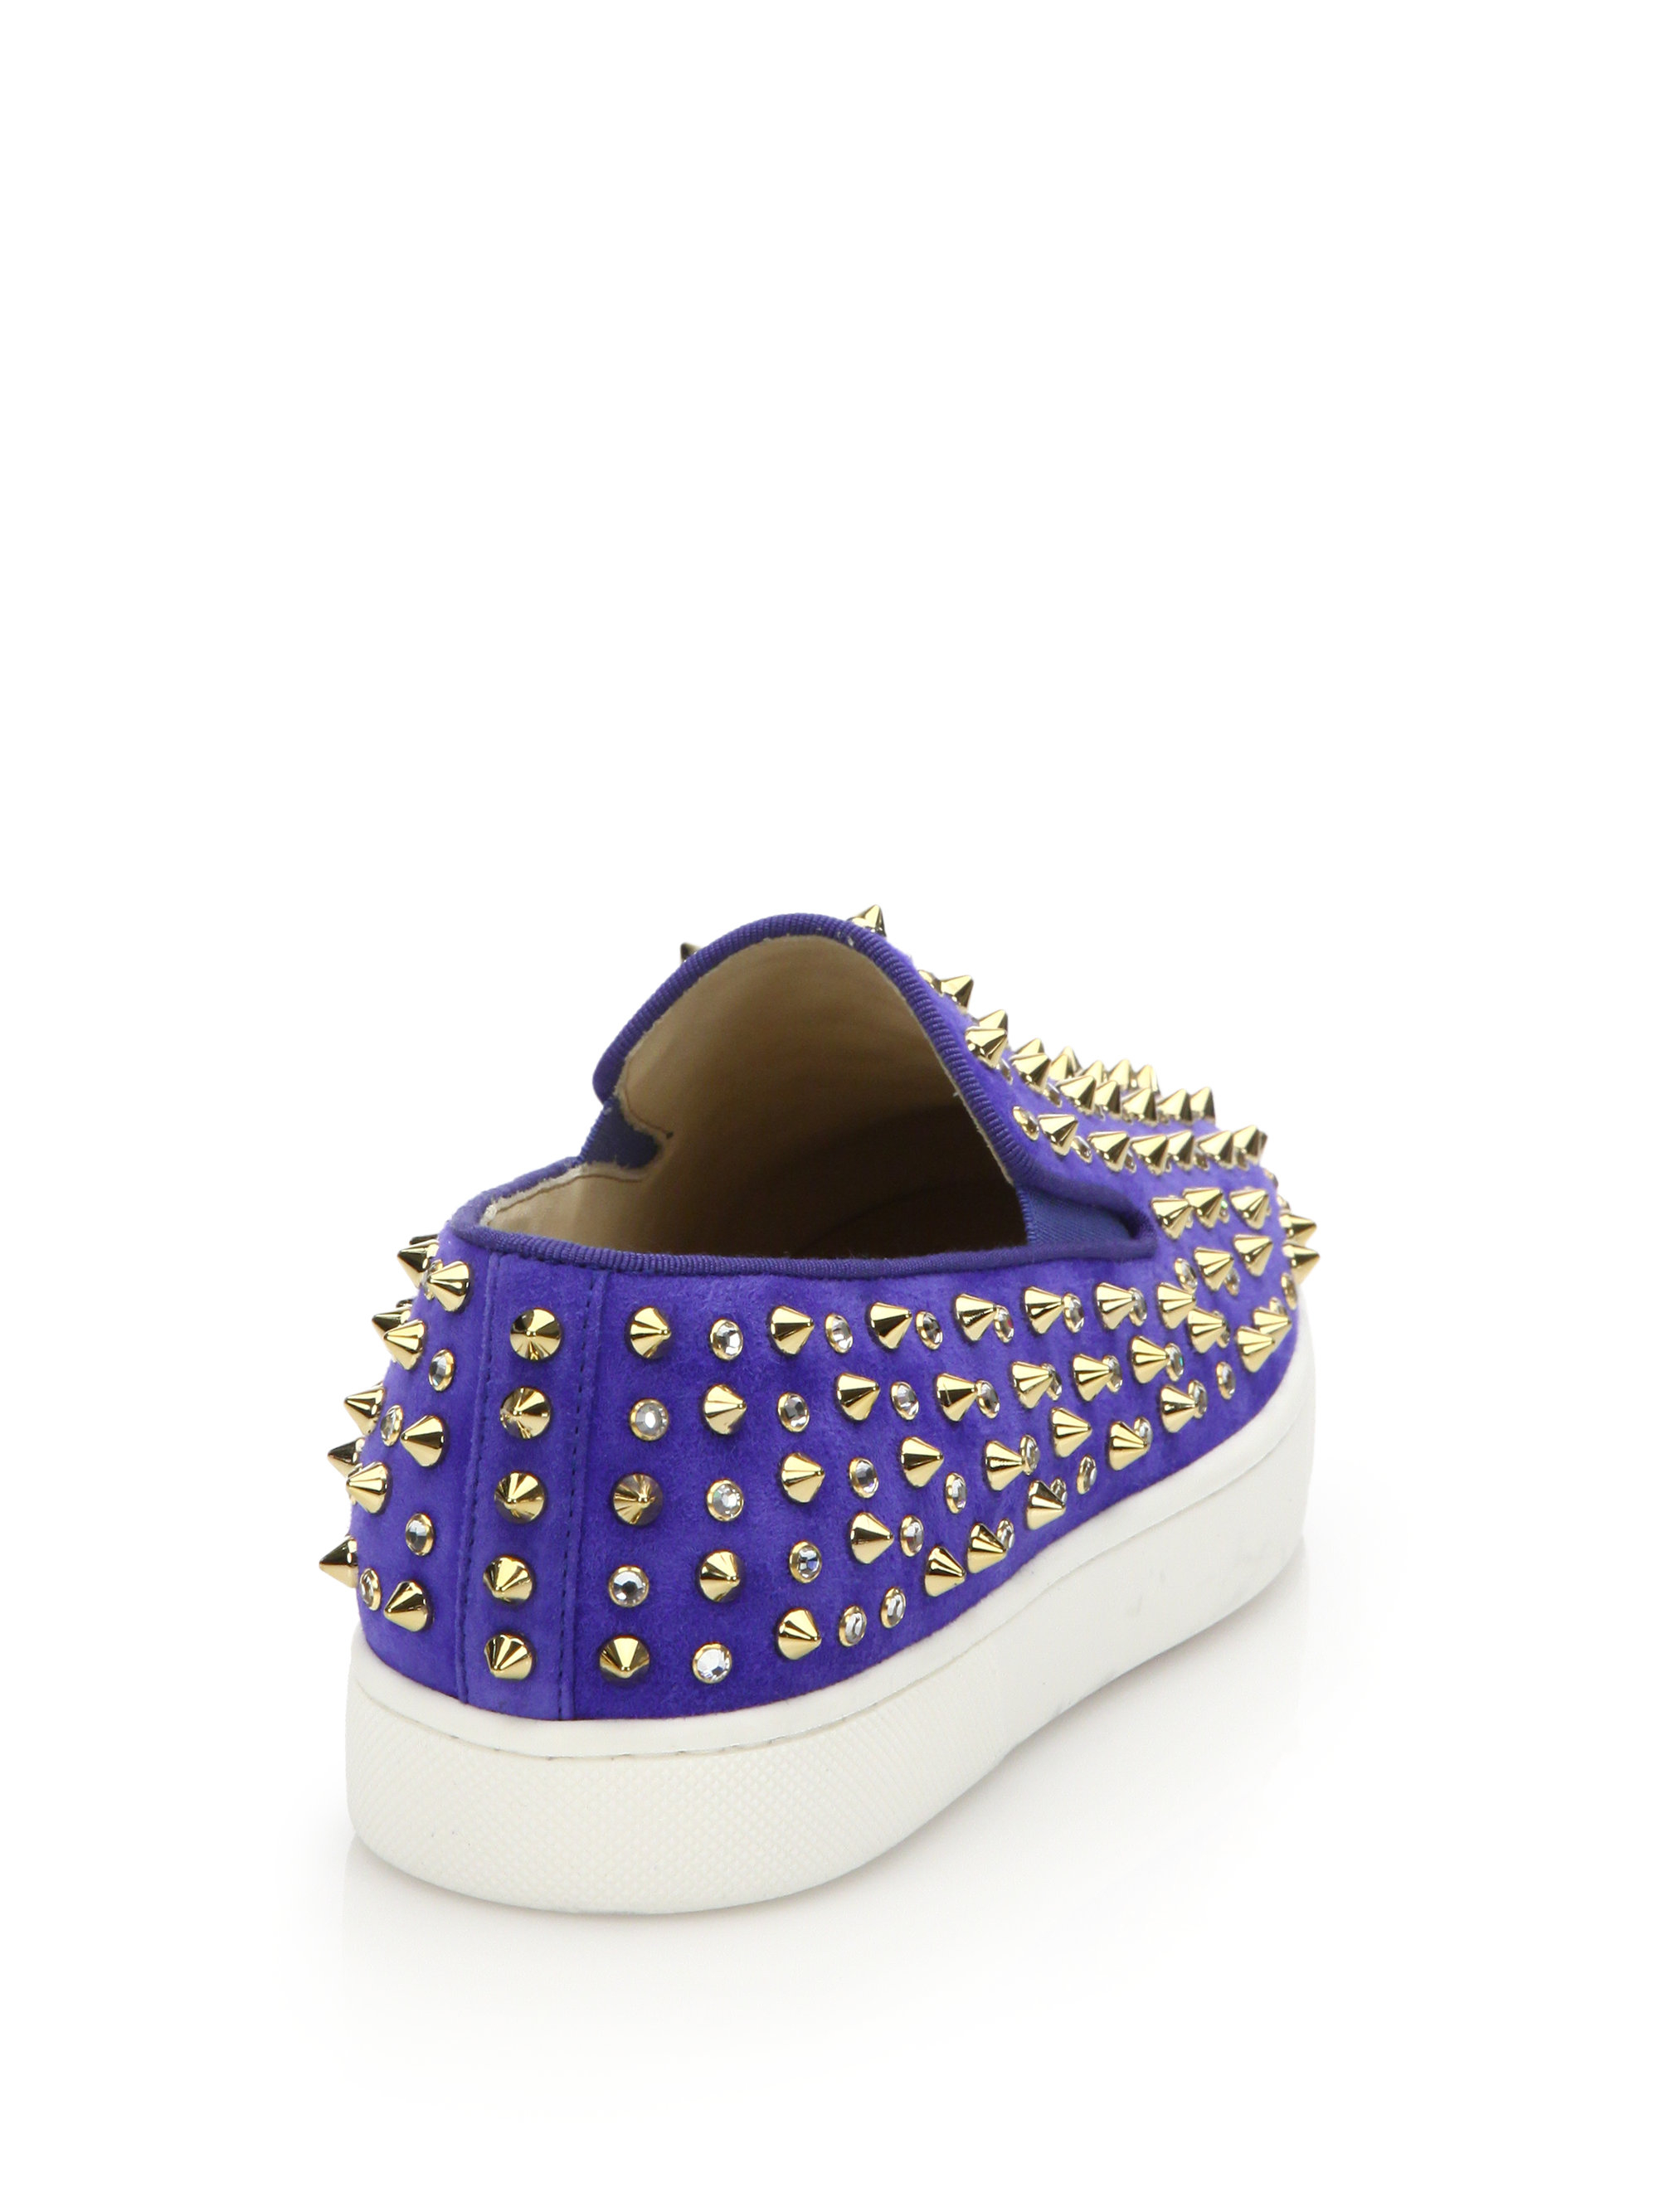 Christian louboutin Roller Flat Studded Suede Slip-on Sneakers in ...